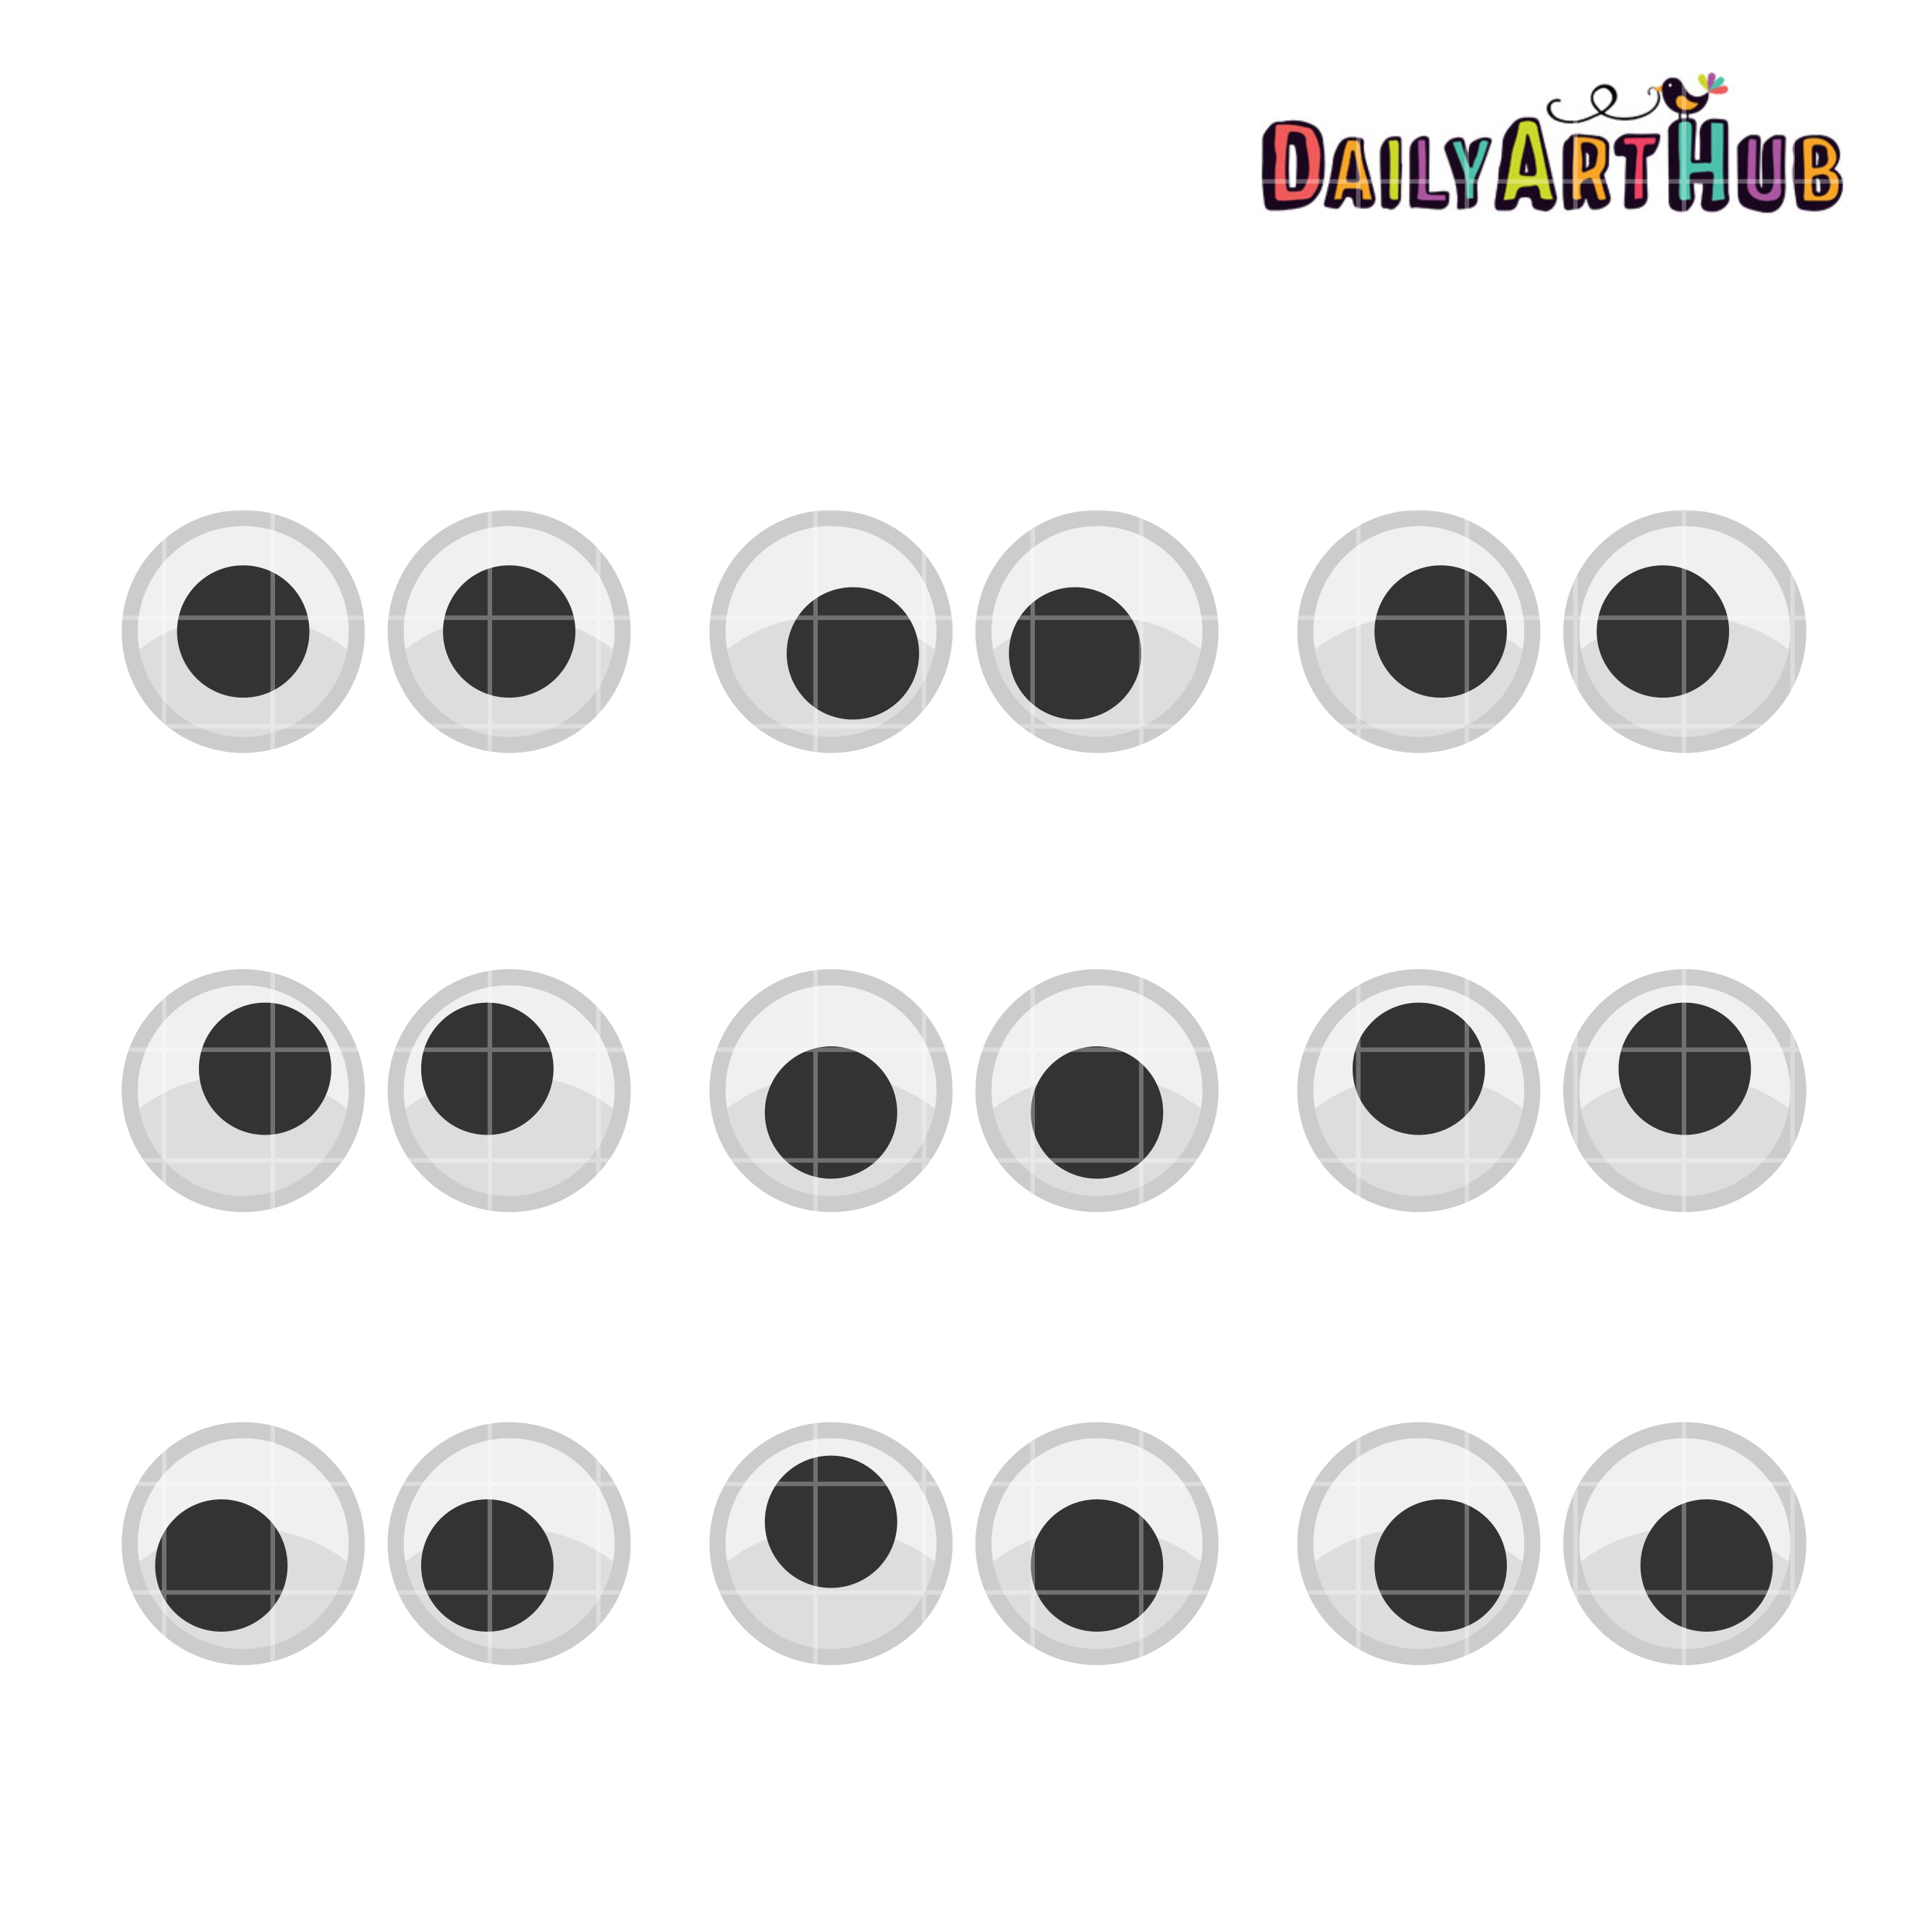 googly eyes clipart hd - photo #29